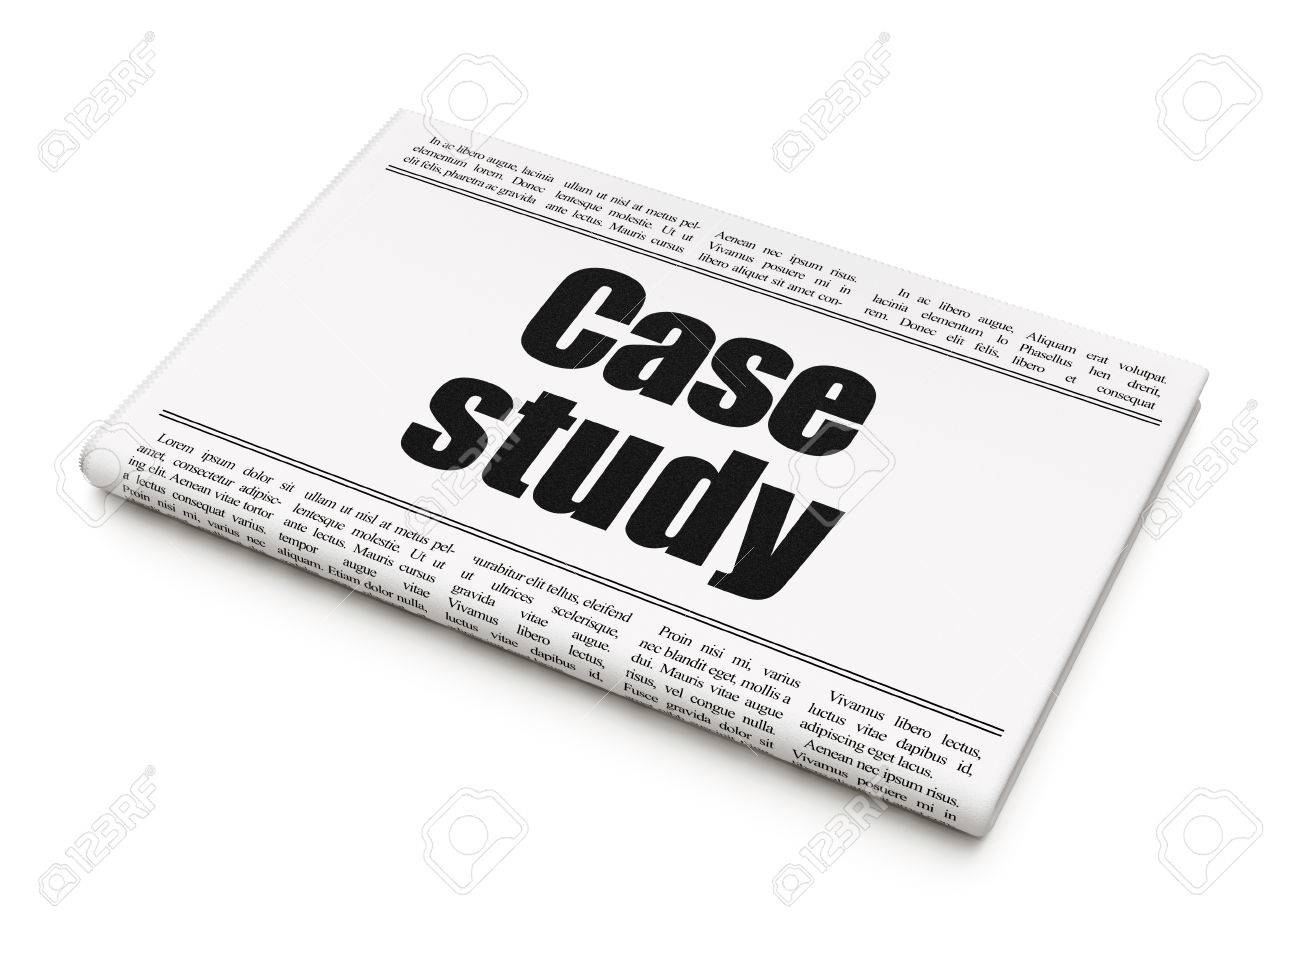 harvard case study harvard case study education case study education dailynewsreport web fc com fc harvard case study education case study education dailynewsreport web fc